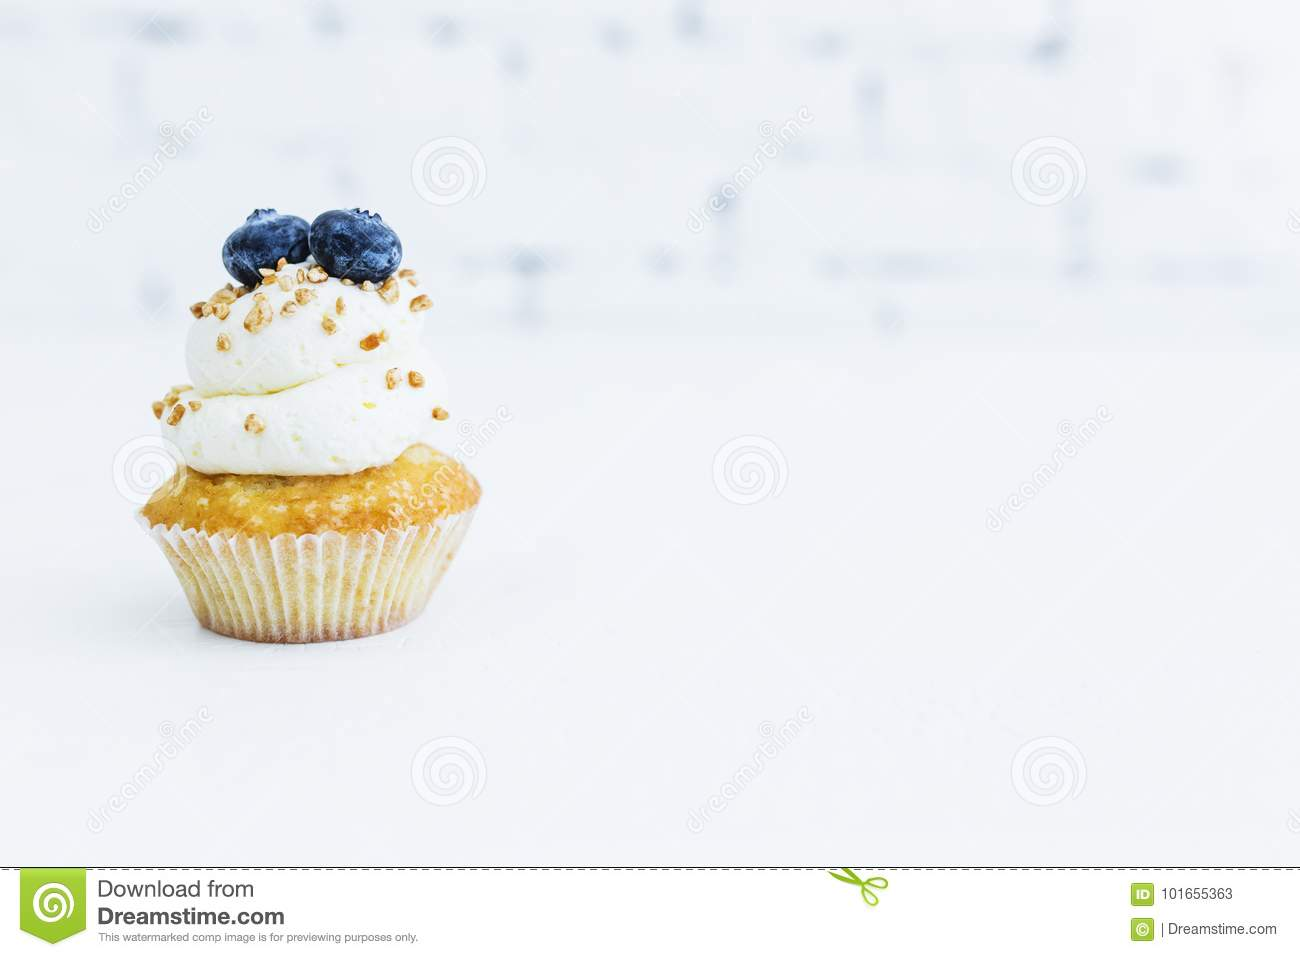 Honey capcake with mascarpone cream with blueberries and nuts.